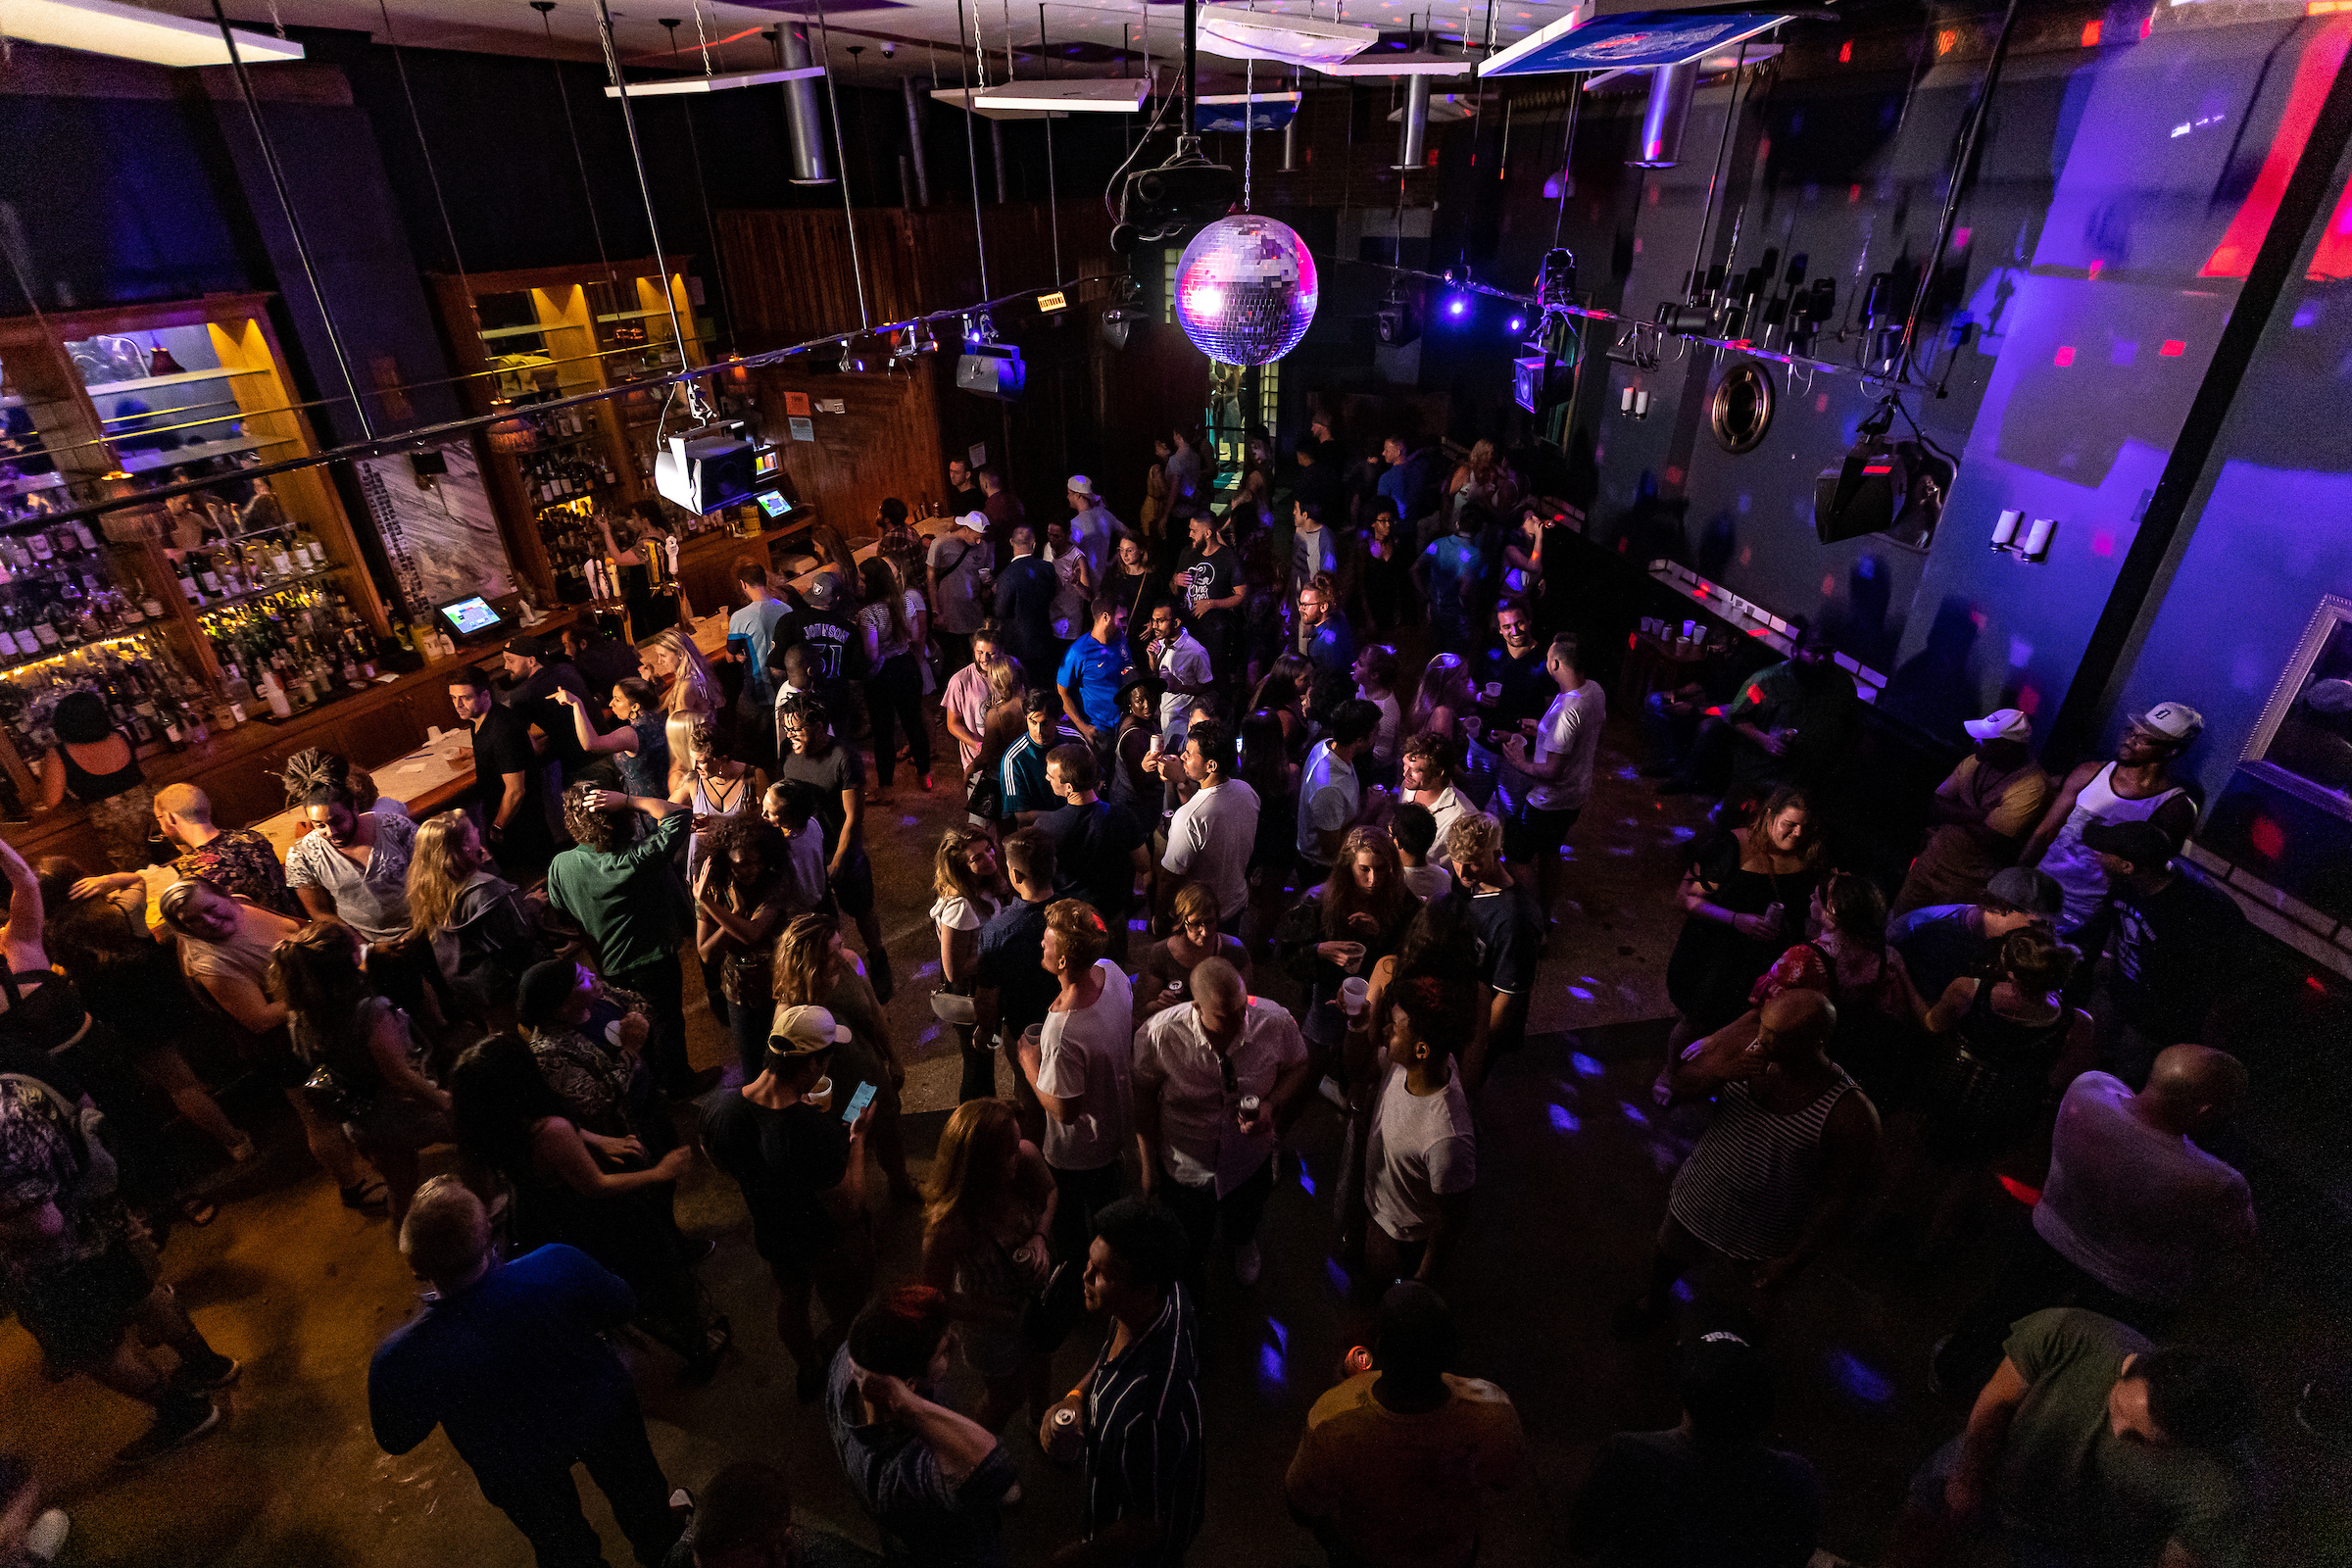 A large group of people gather in a club on the dancefloor beneath a disco ball.